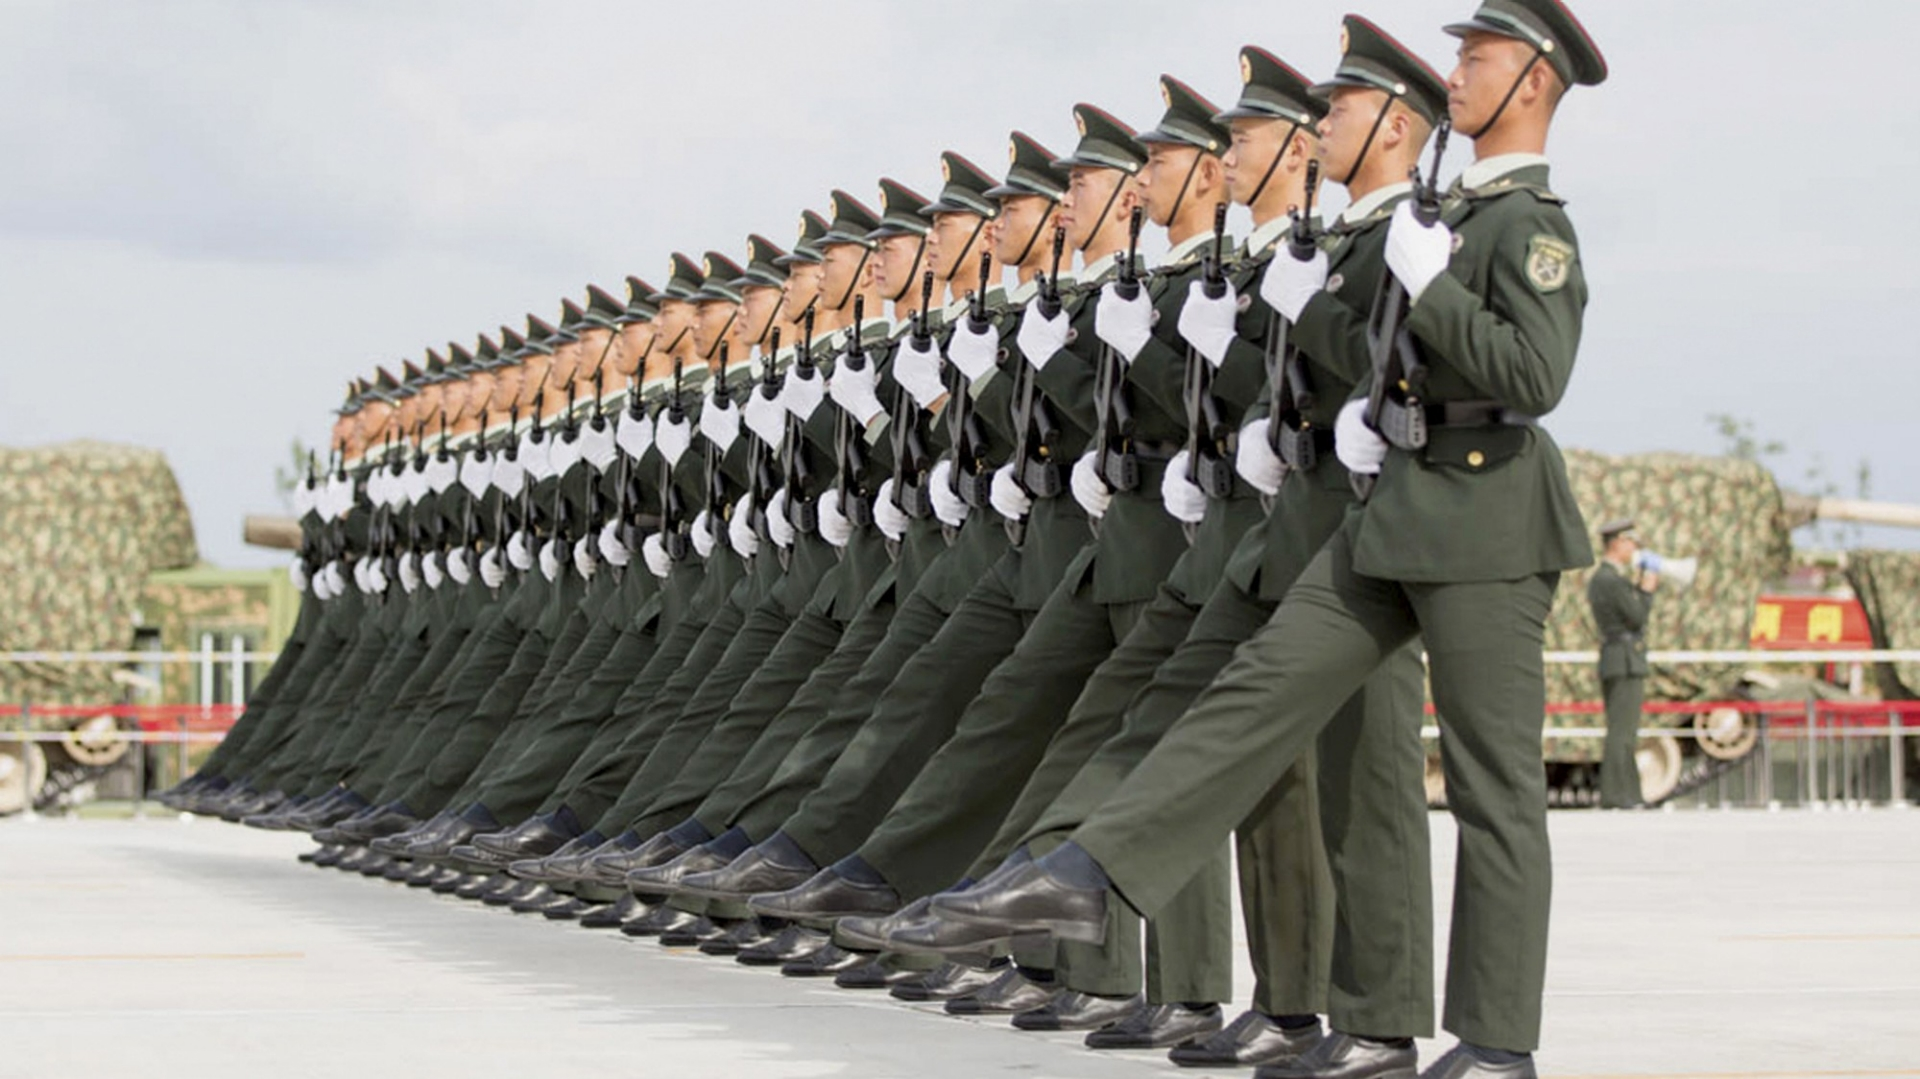 In Brief: Eric Heginbotham on Trends in U.S.-China Military Competition